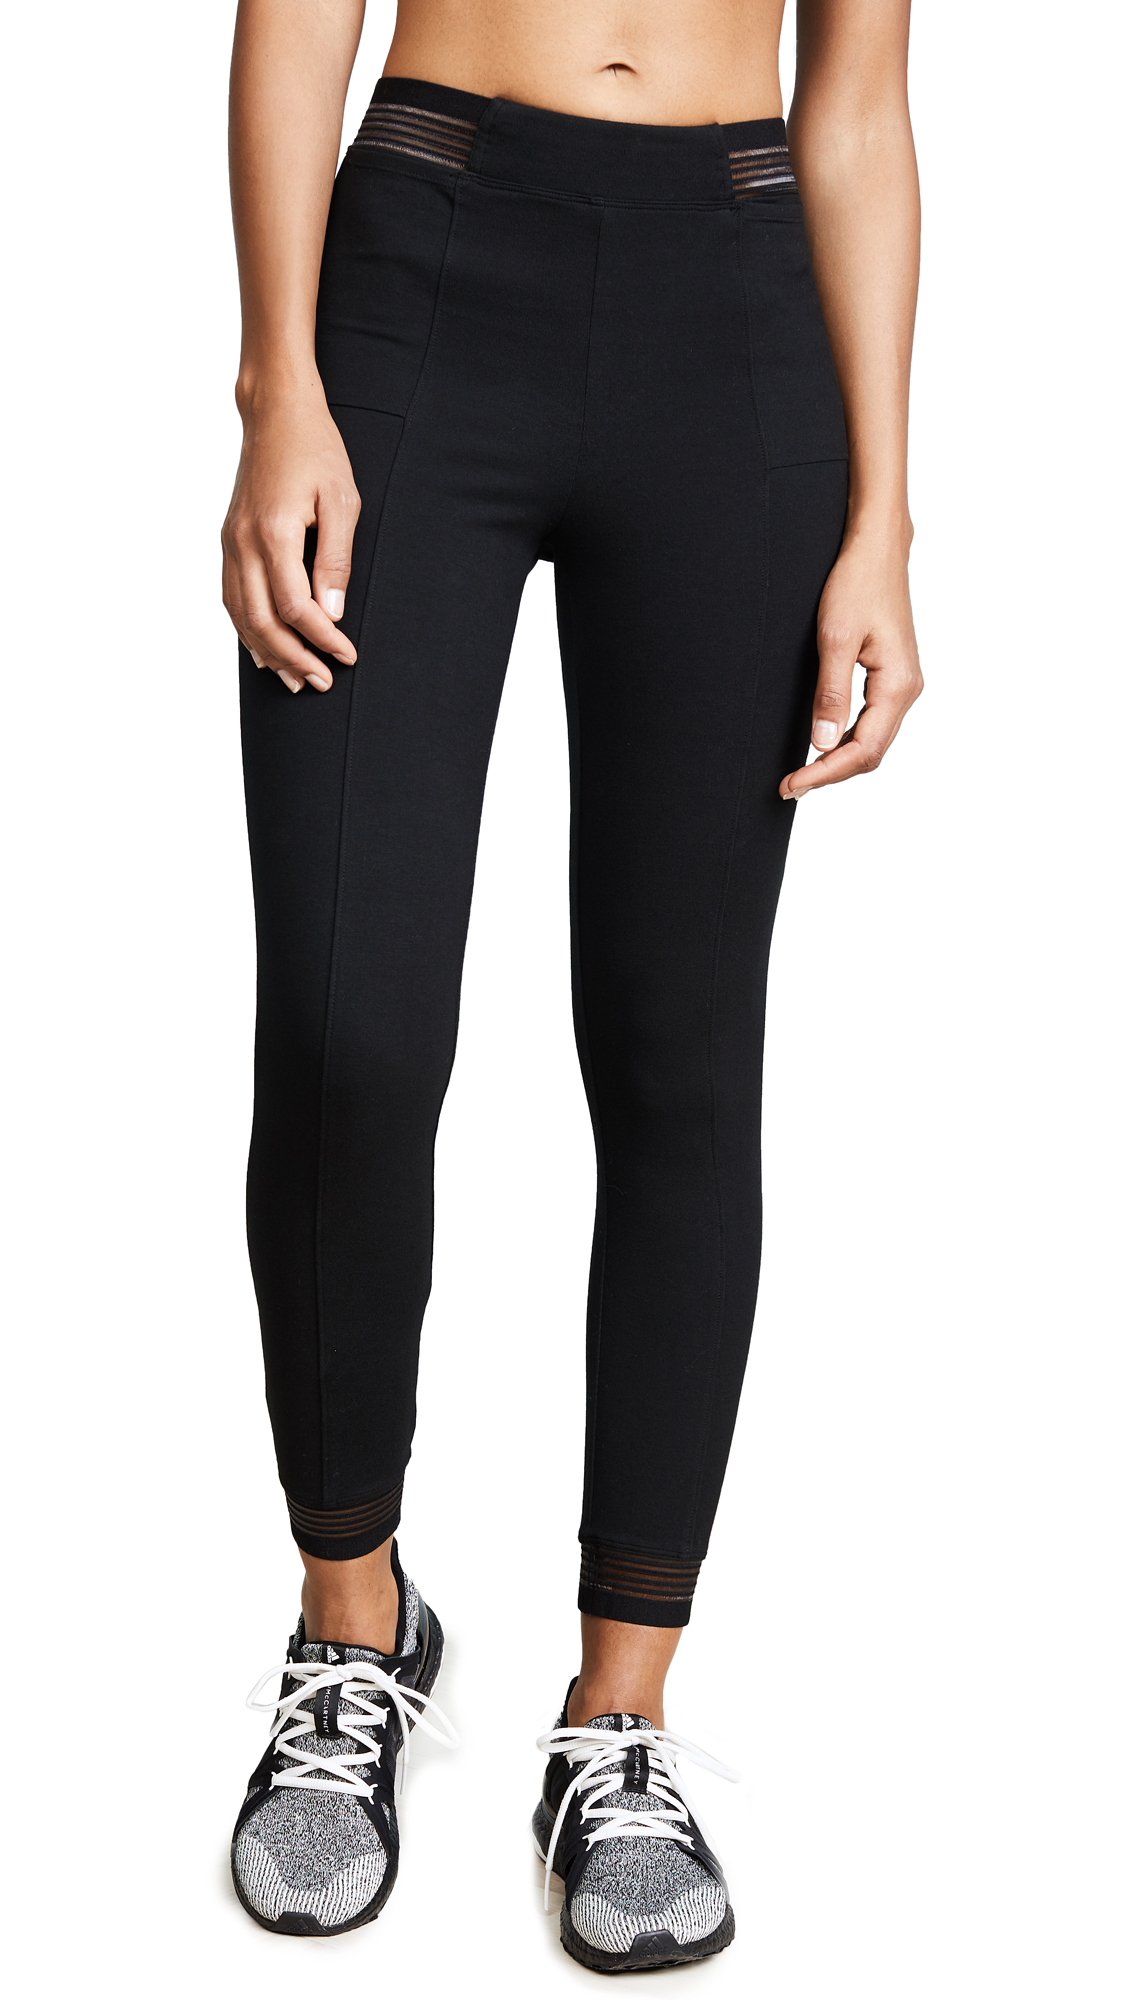 Yummie Ankle Leggings with Stripes - Black